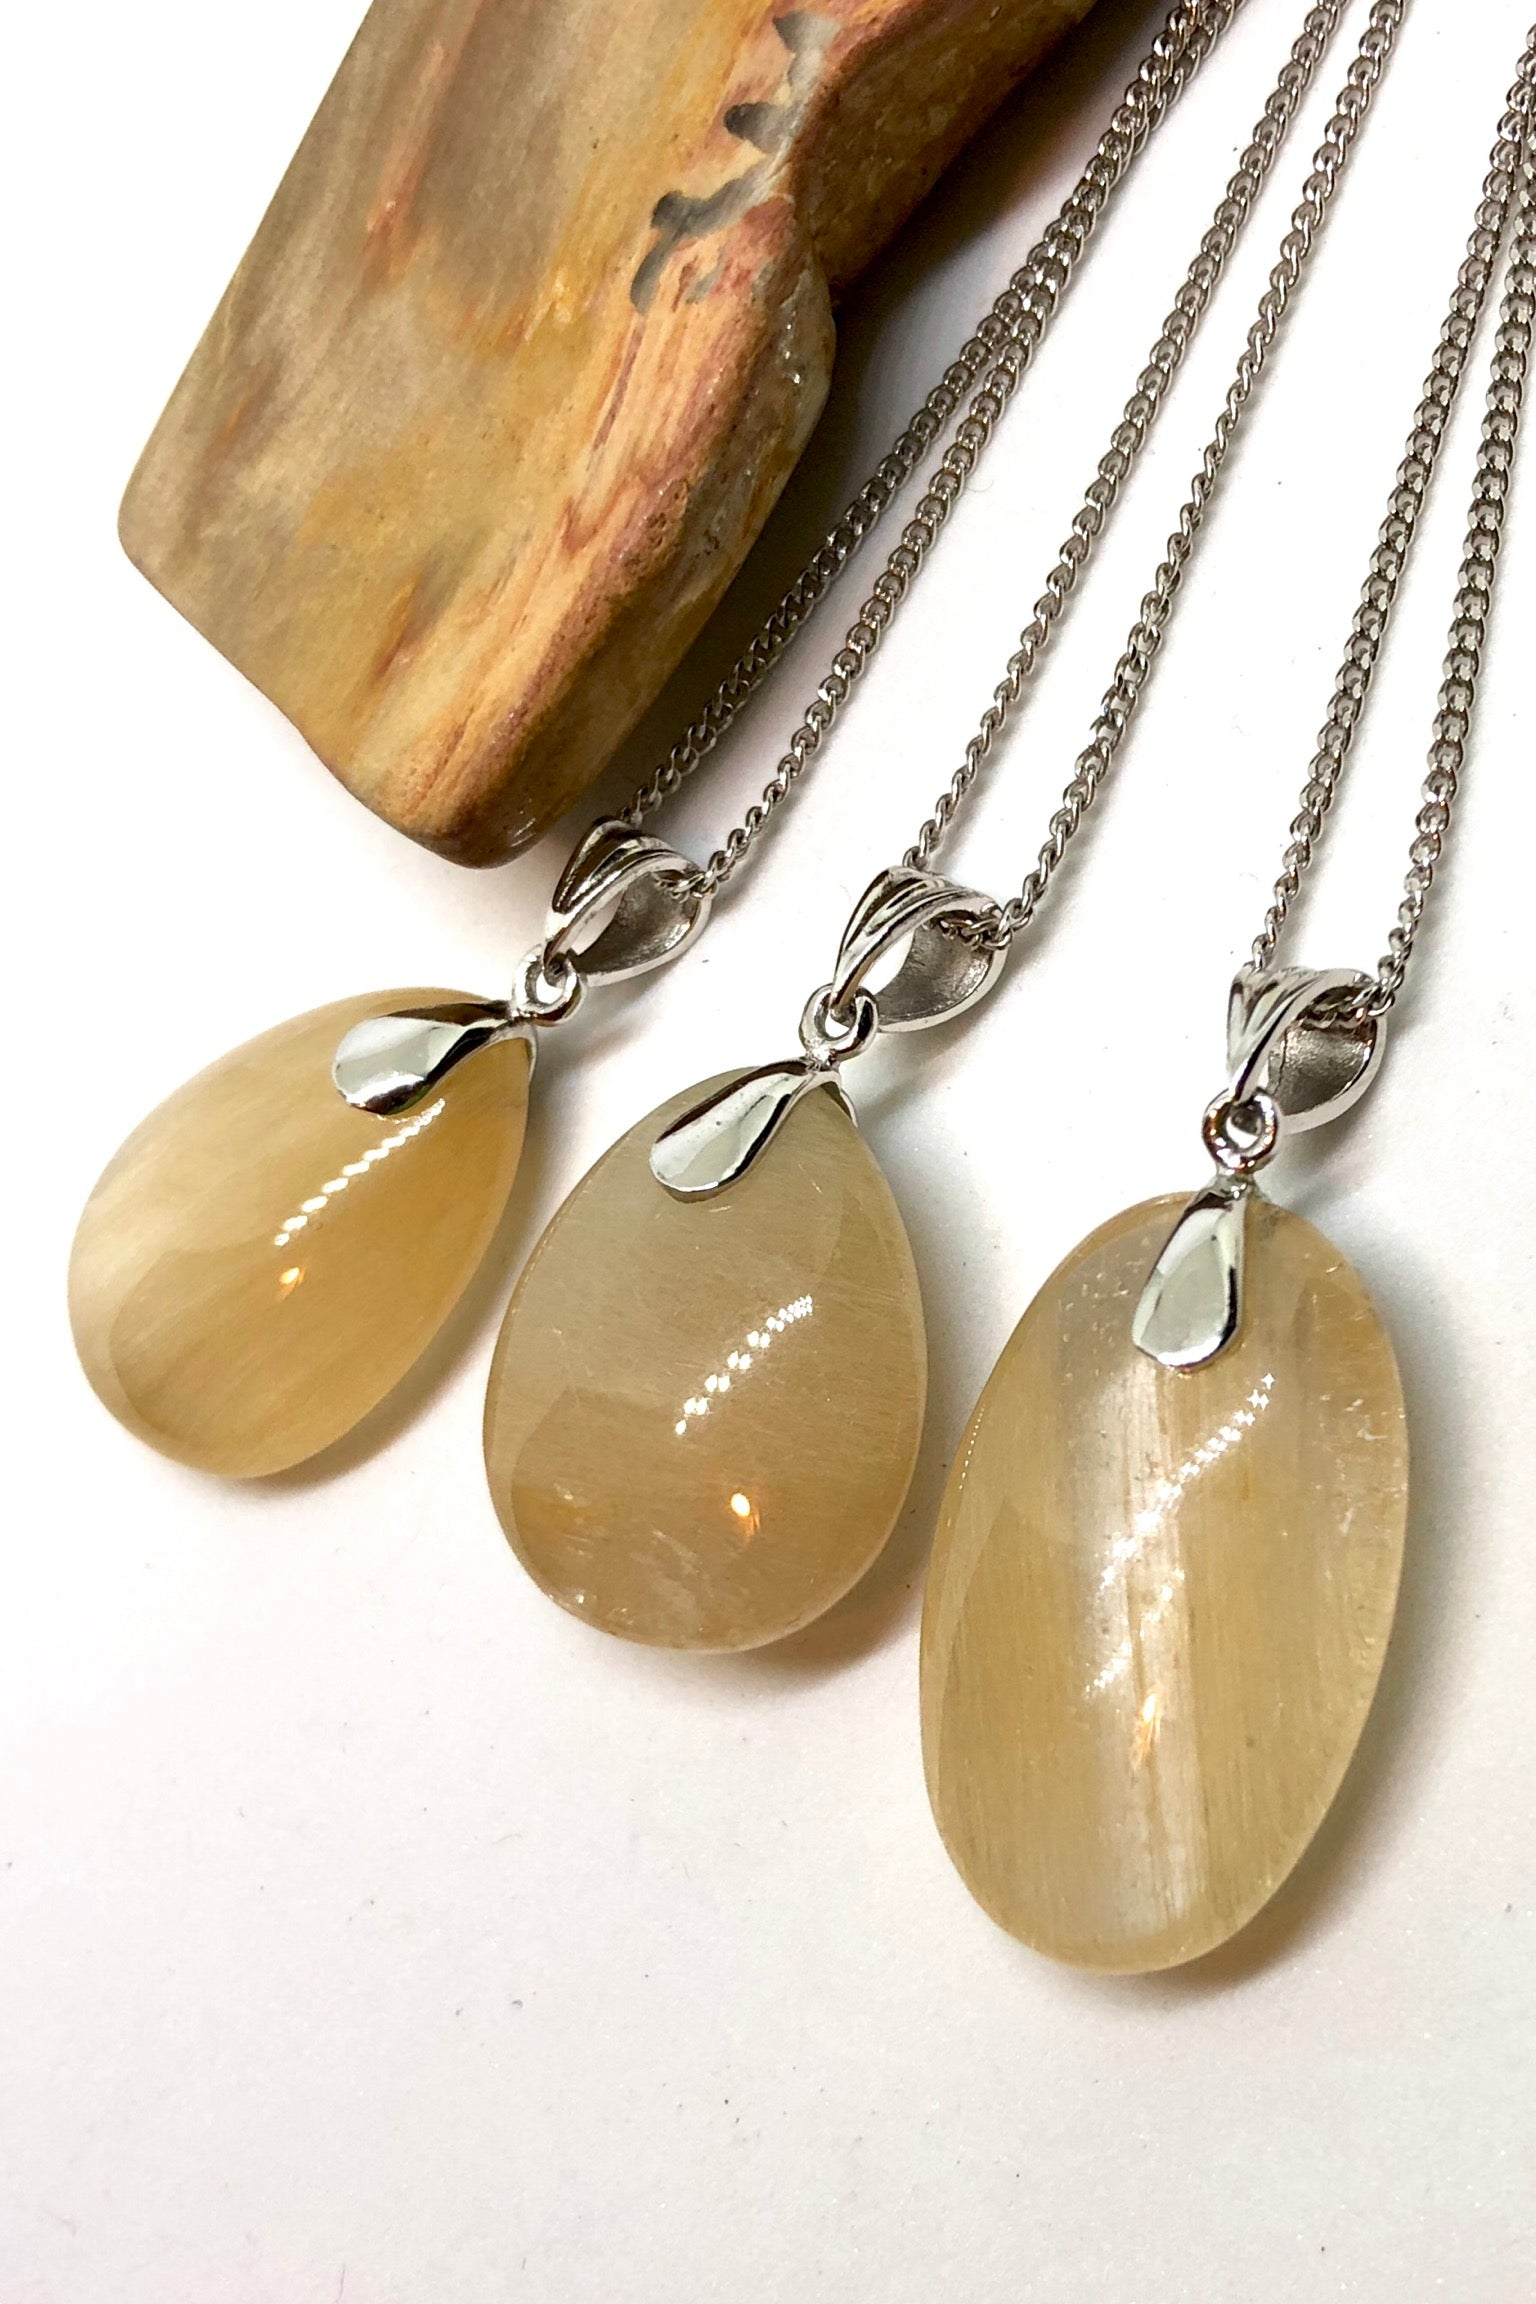 Pendant of Golden Rutilated Quartz on a Silver Chain 3